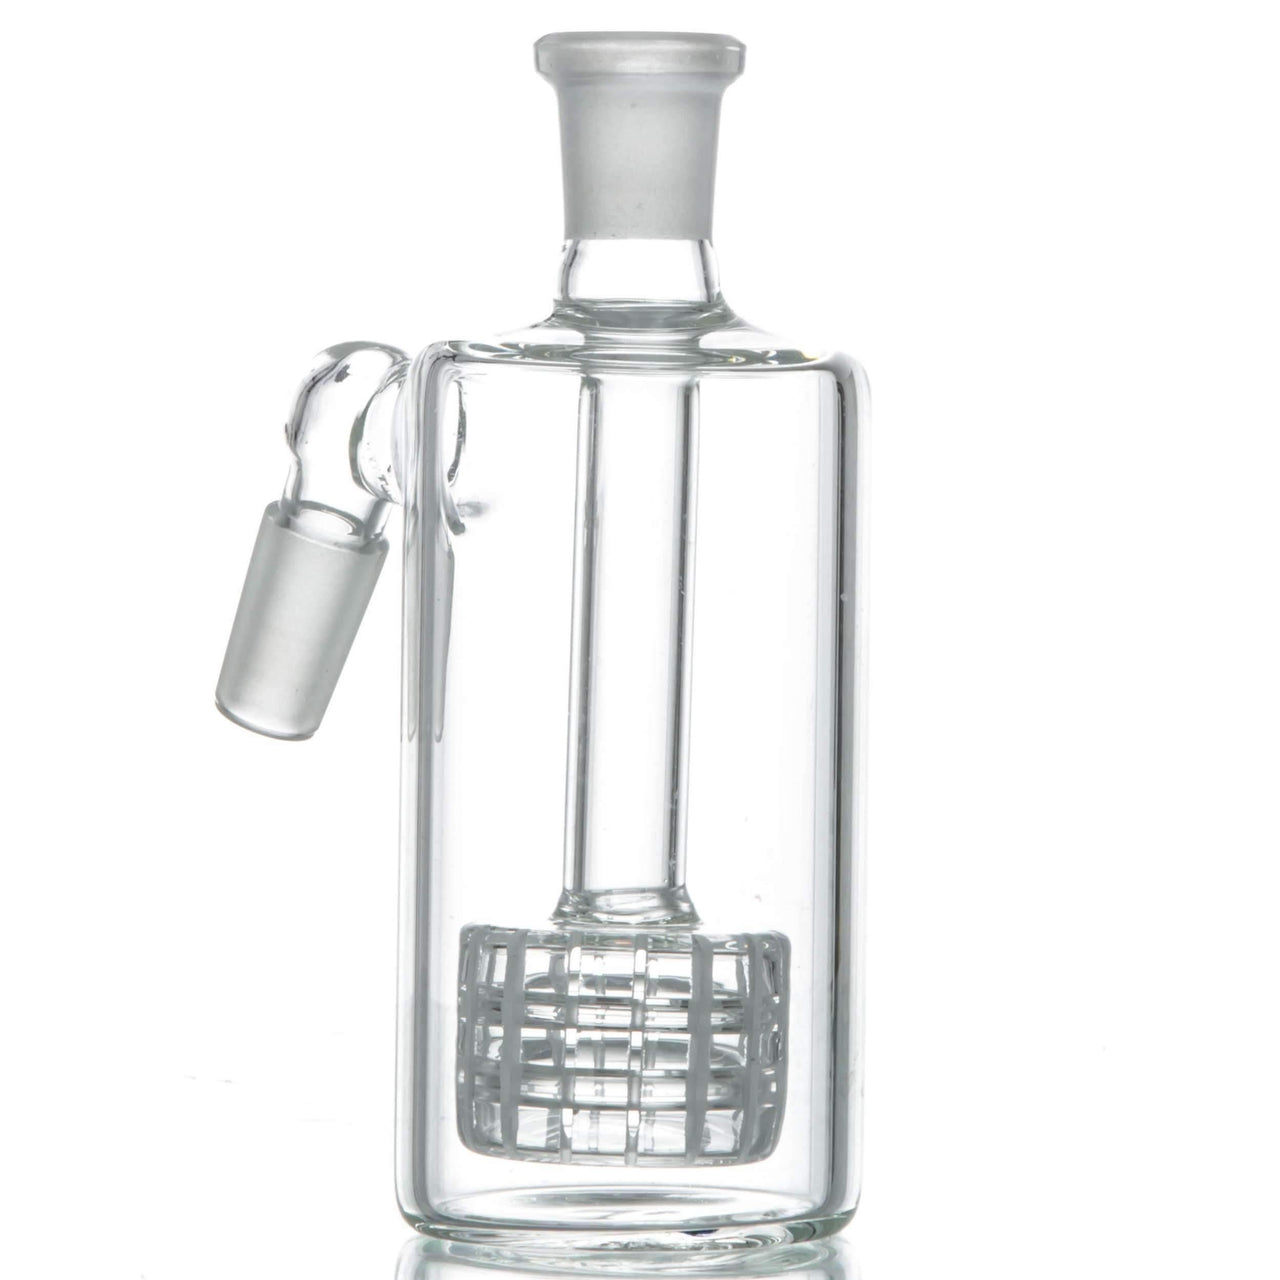 Glass Ash Catcher with Matrix Perc - 45˚ Joint | The710Source.com